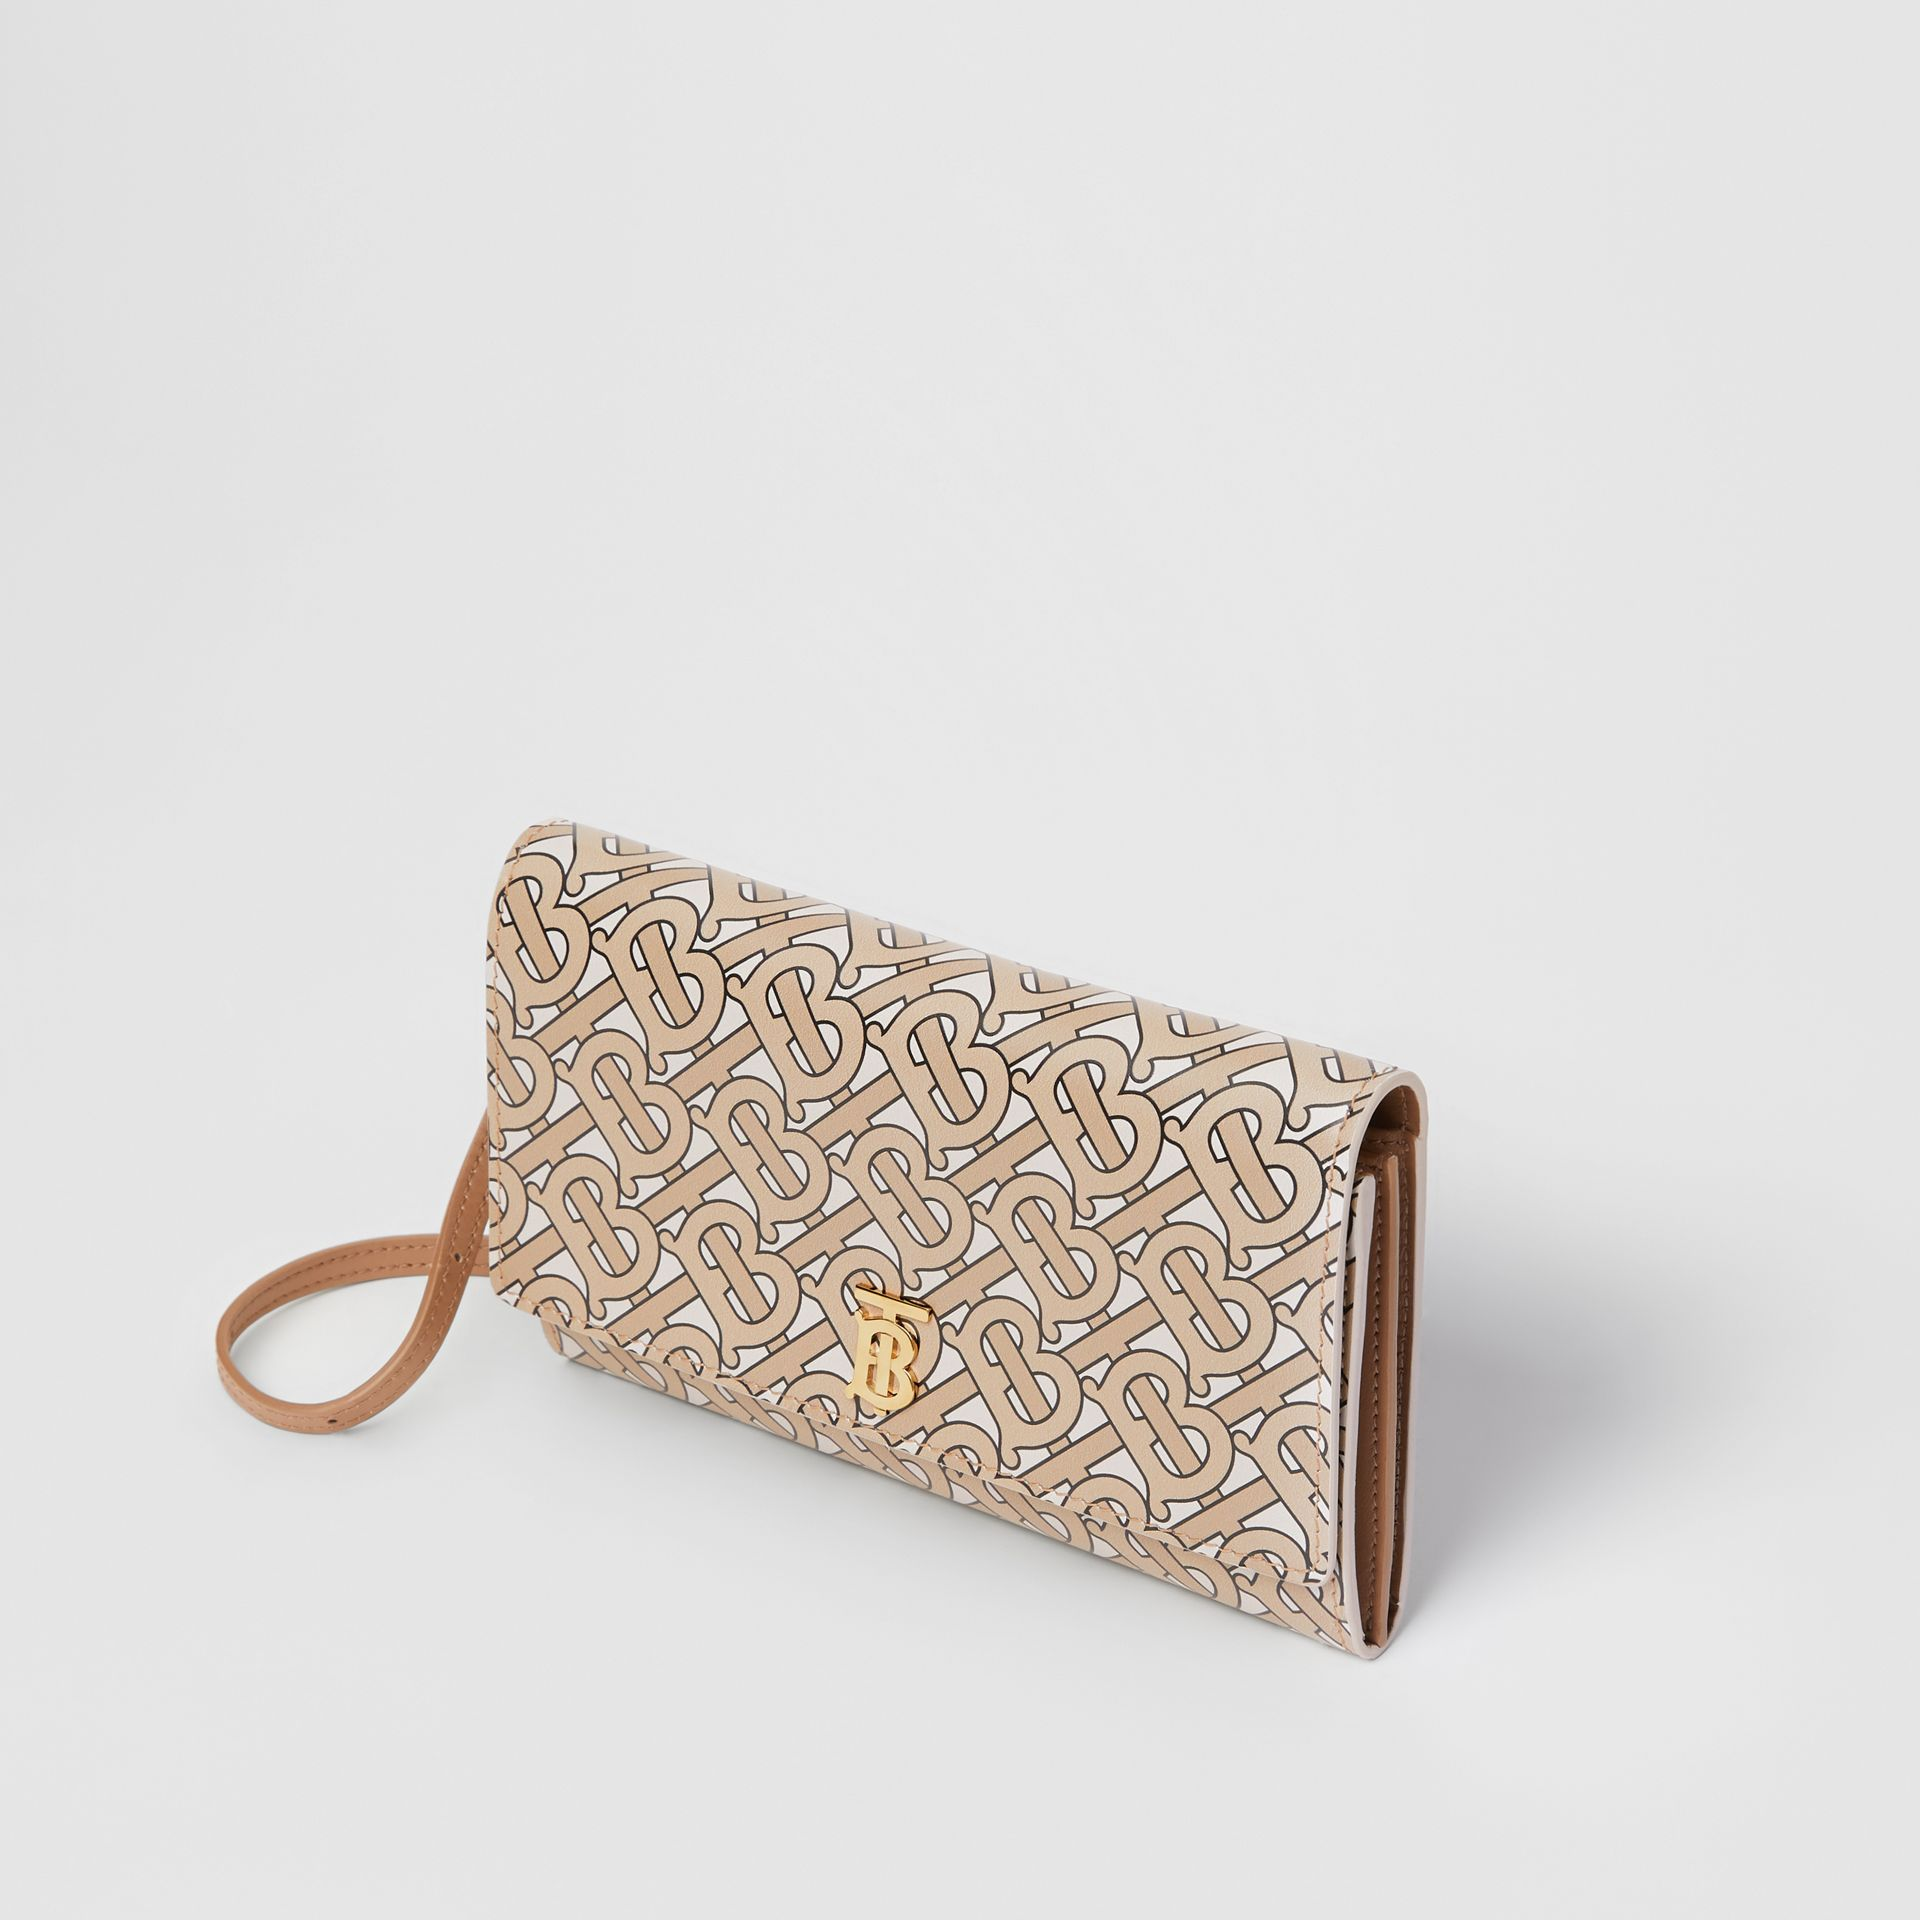 Monogram Print Leather Wallet with Detachable Strap in Beige - Women | Burberry United Kingdom - gallery image 3